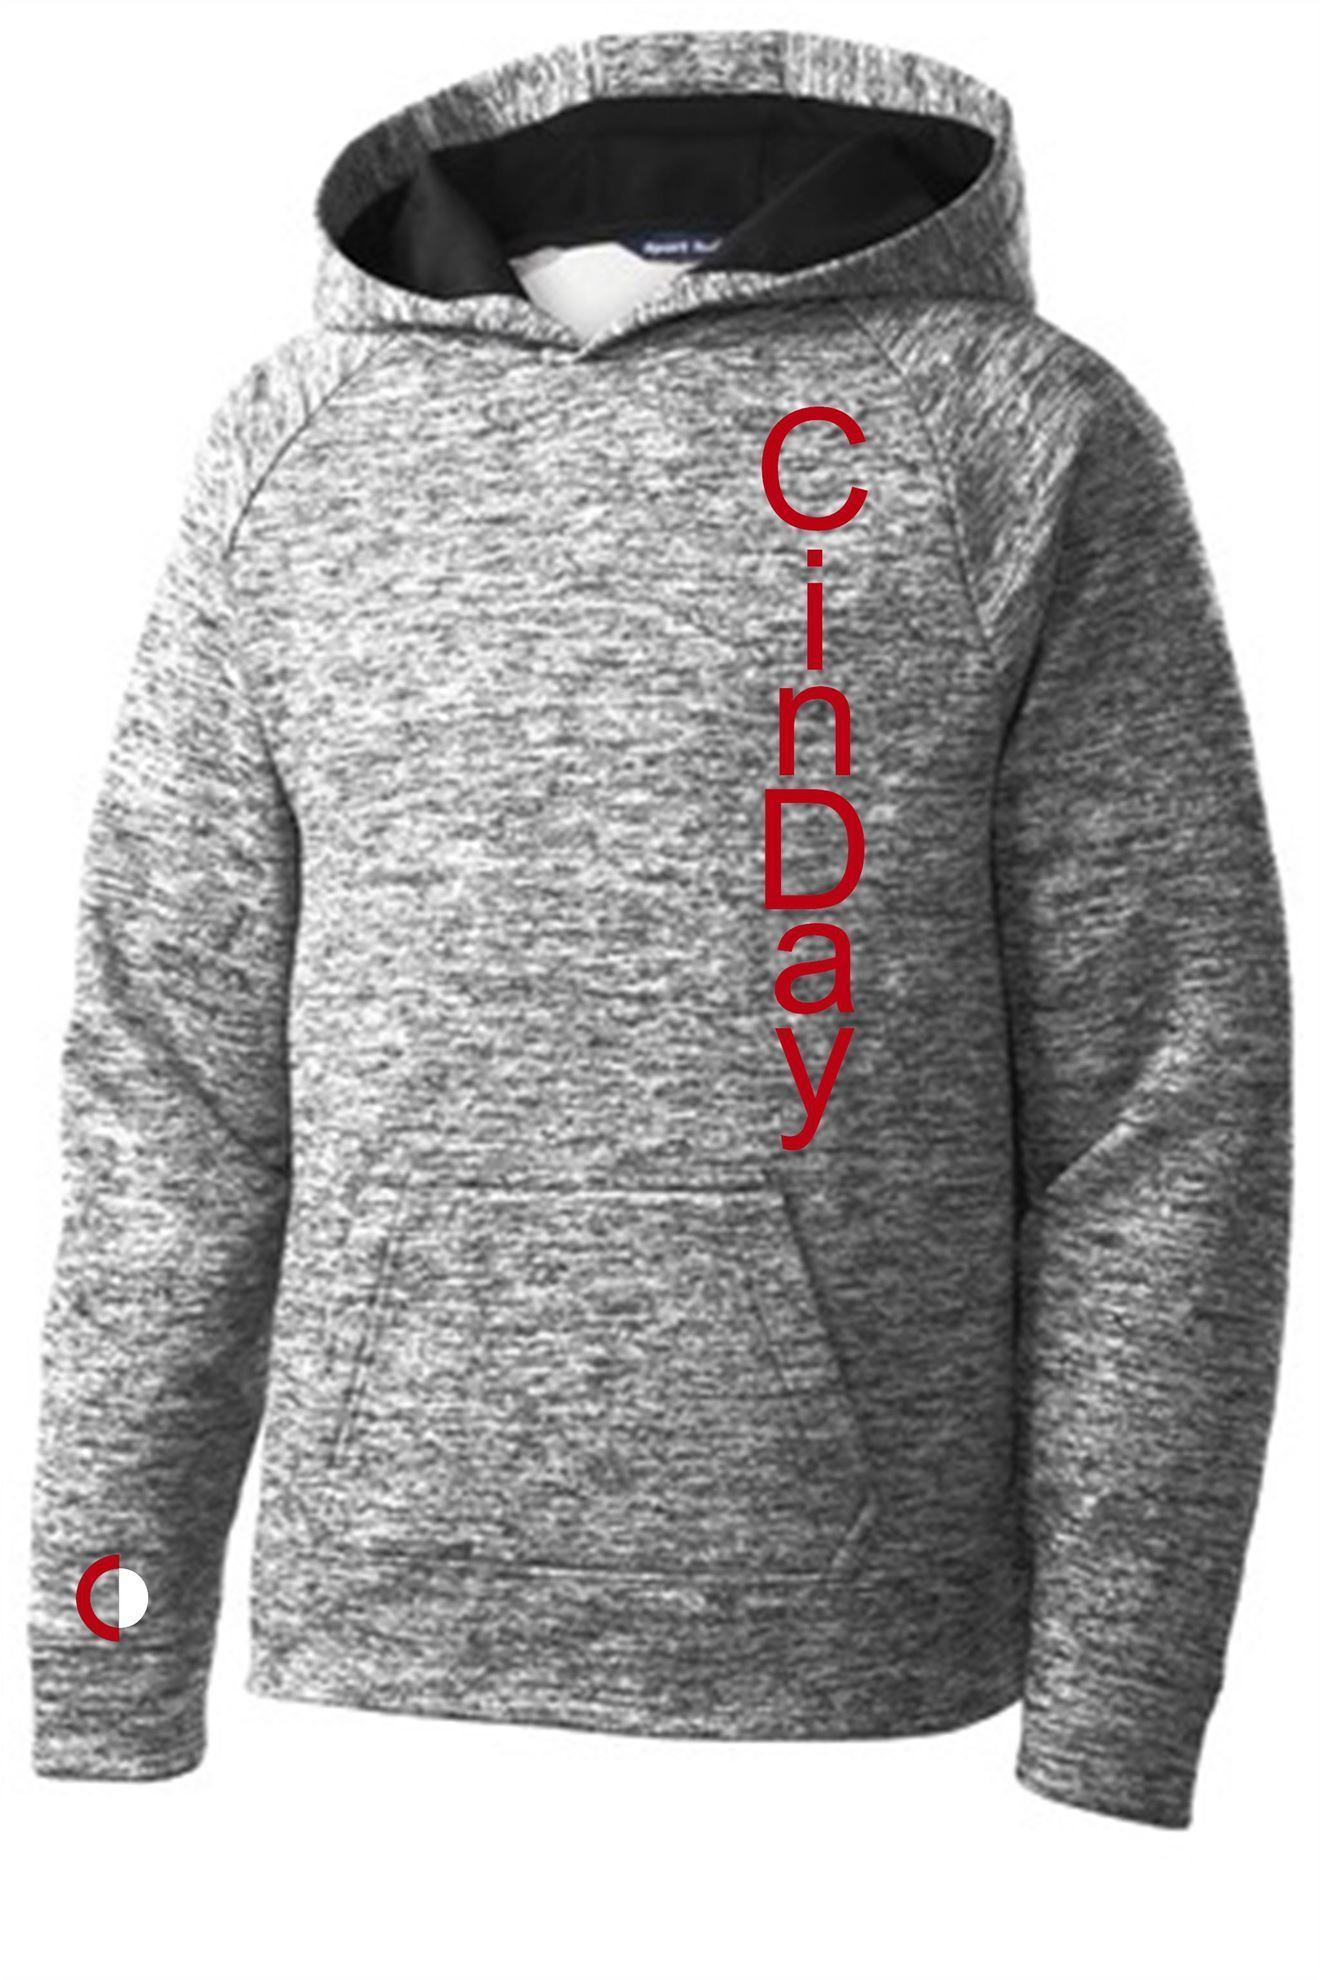 The Spirit In You Cinday Academy Youth Electric Hoodie By Sport Tek Yst225 Heathered Black Or Heathered Red Ready for you to customize for your event or team. the spirit in you